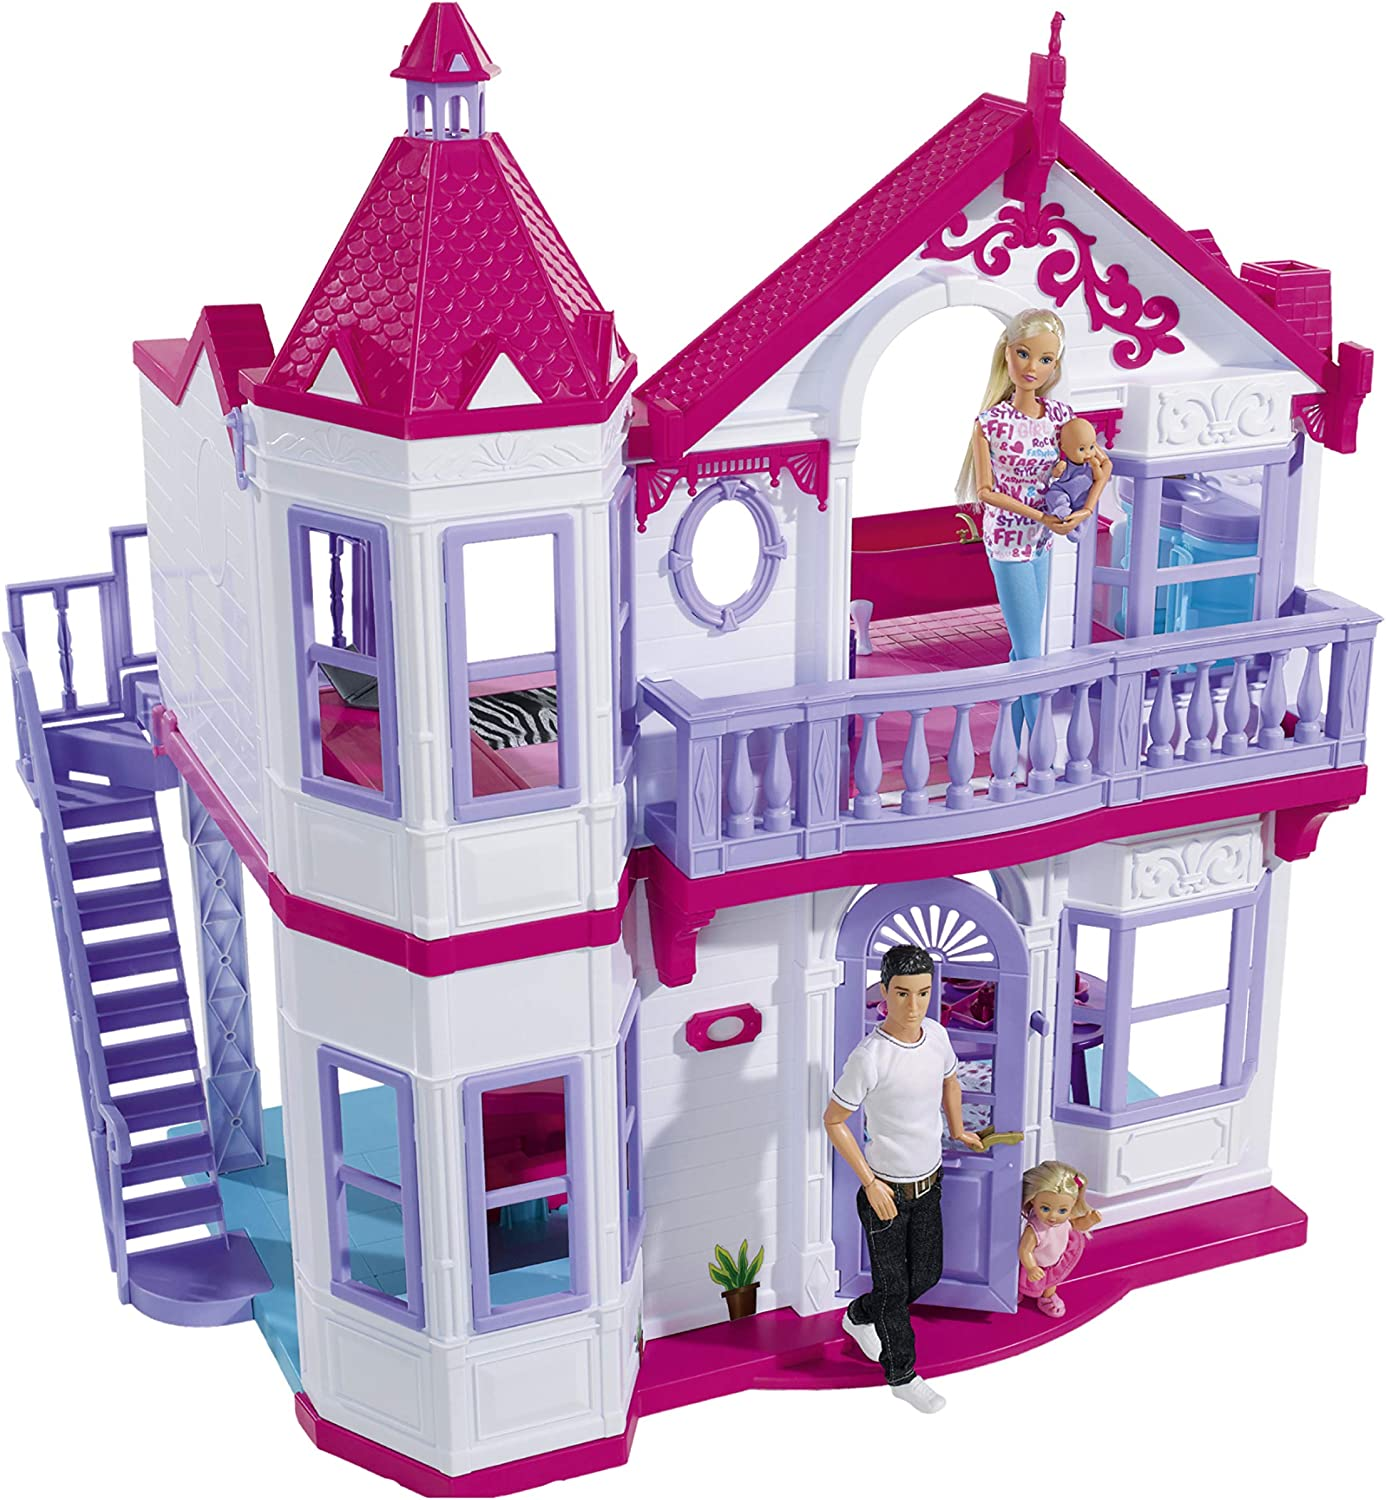 Simba Toys Japan Maker New - Steffi Love My with Ranking TOP8 4 Rooms Multi Dreamhouse